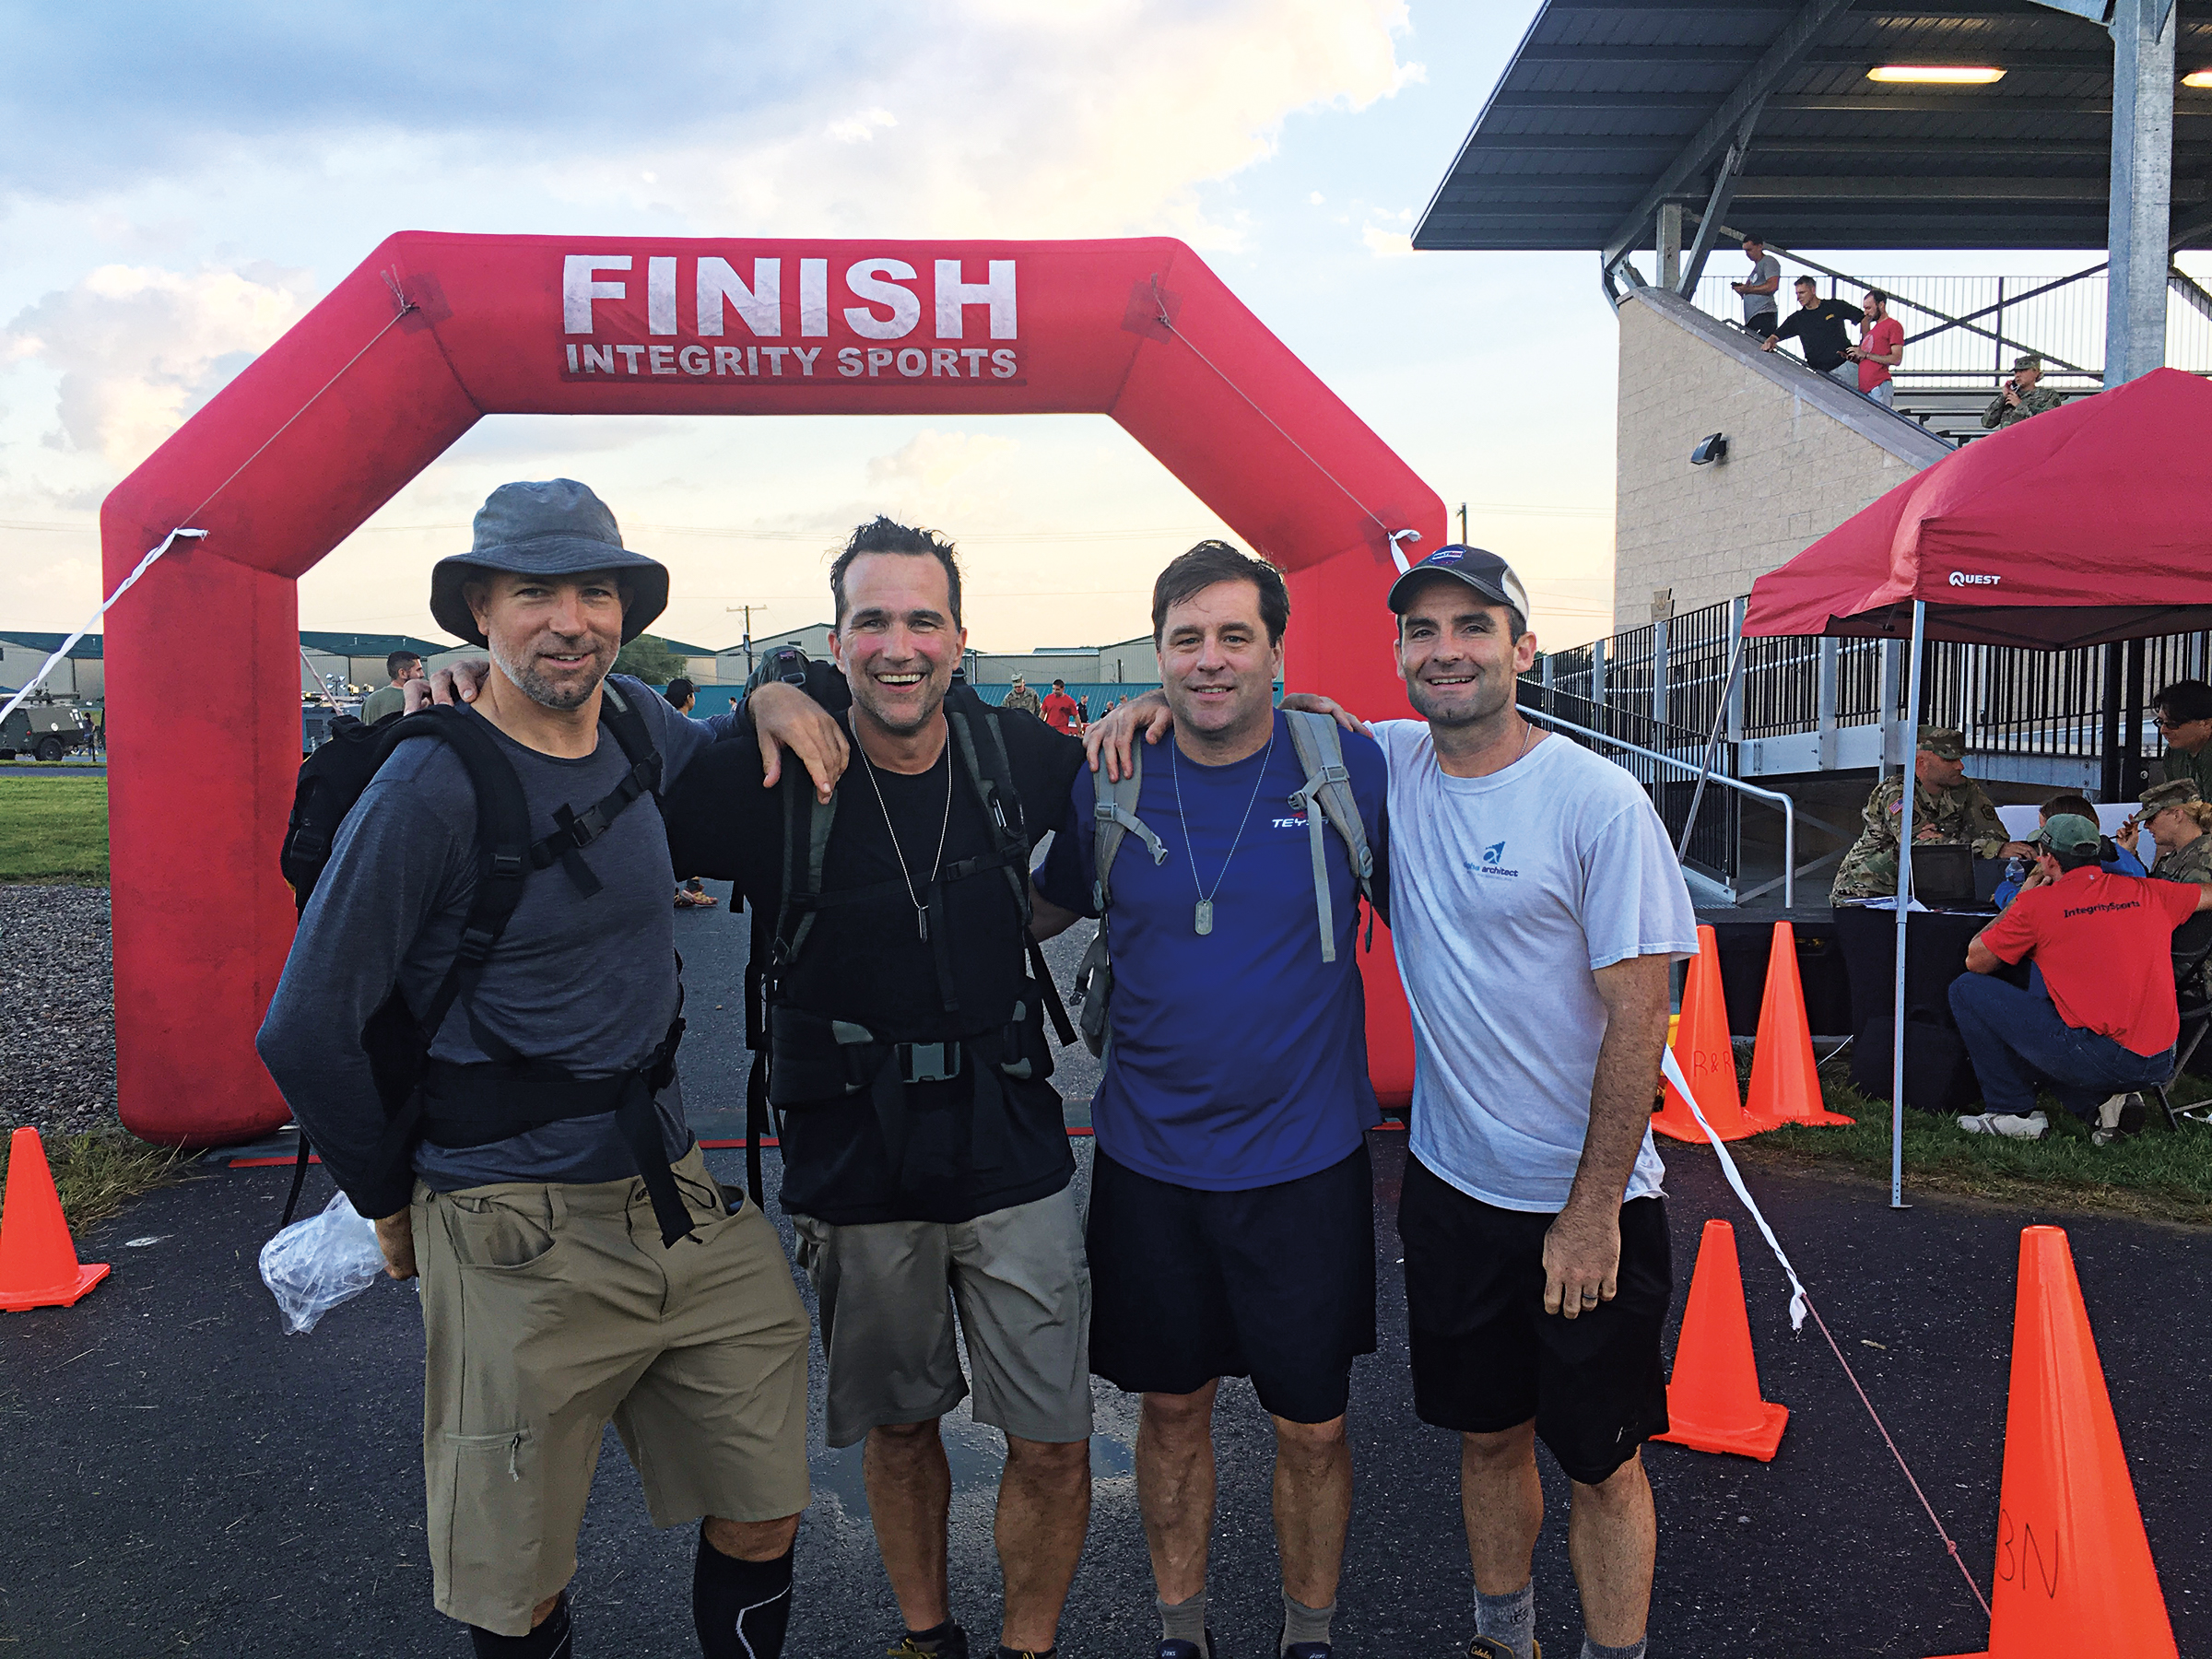 (L. to r.) Bart Quillen '85, Charlie Shaffer '85, David Foulke '85, and Capt. Wes Gray at the finish line after the 28-mile March for the Fallen.